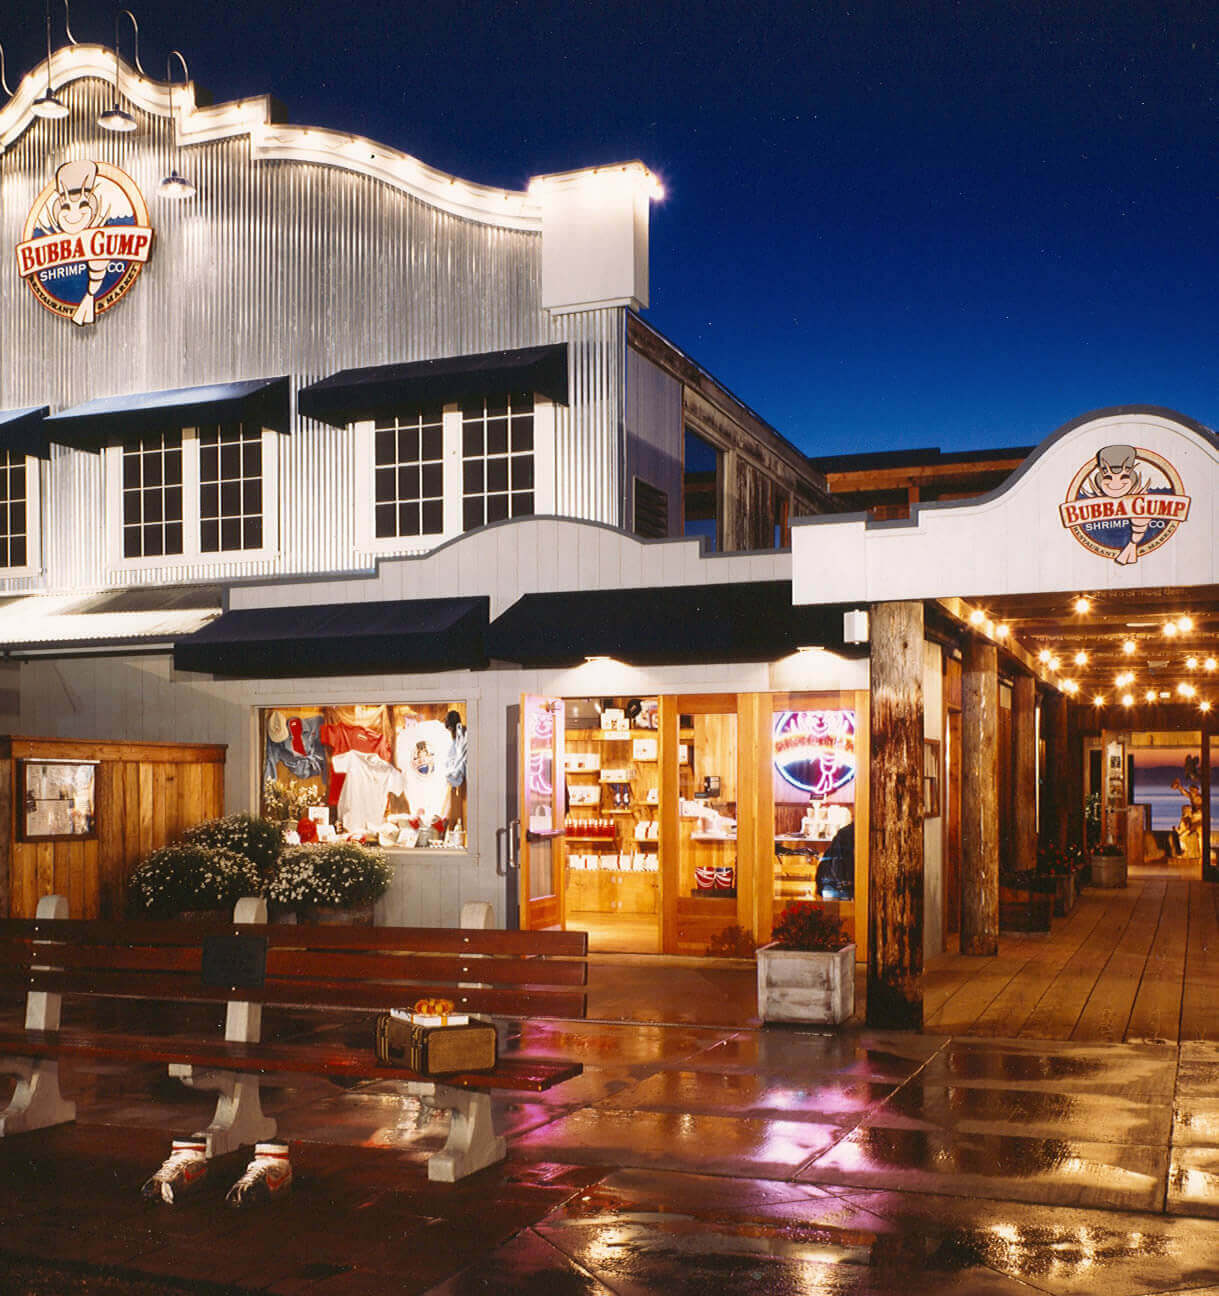 Bubba Gump Shrimp Restaurant